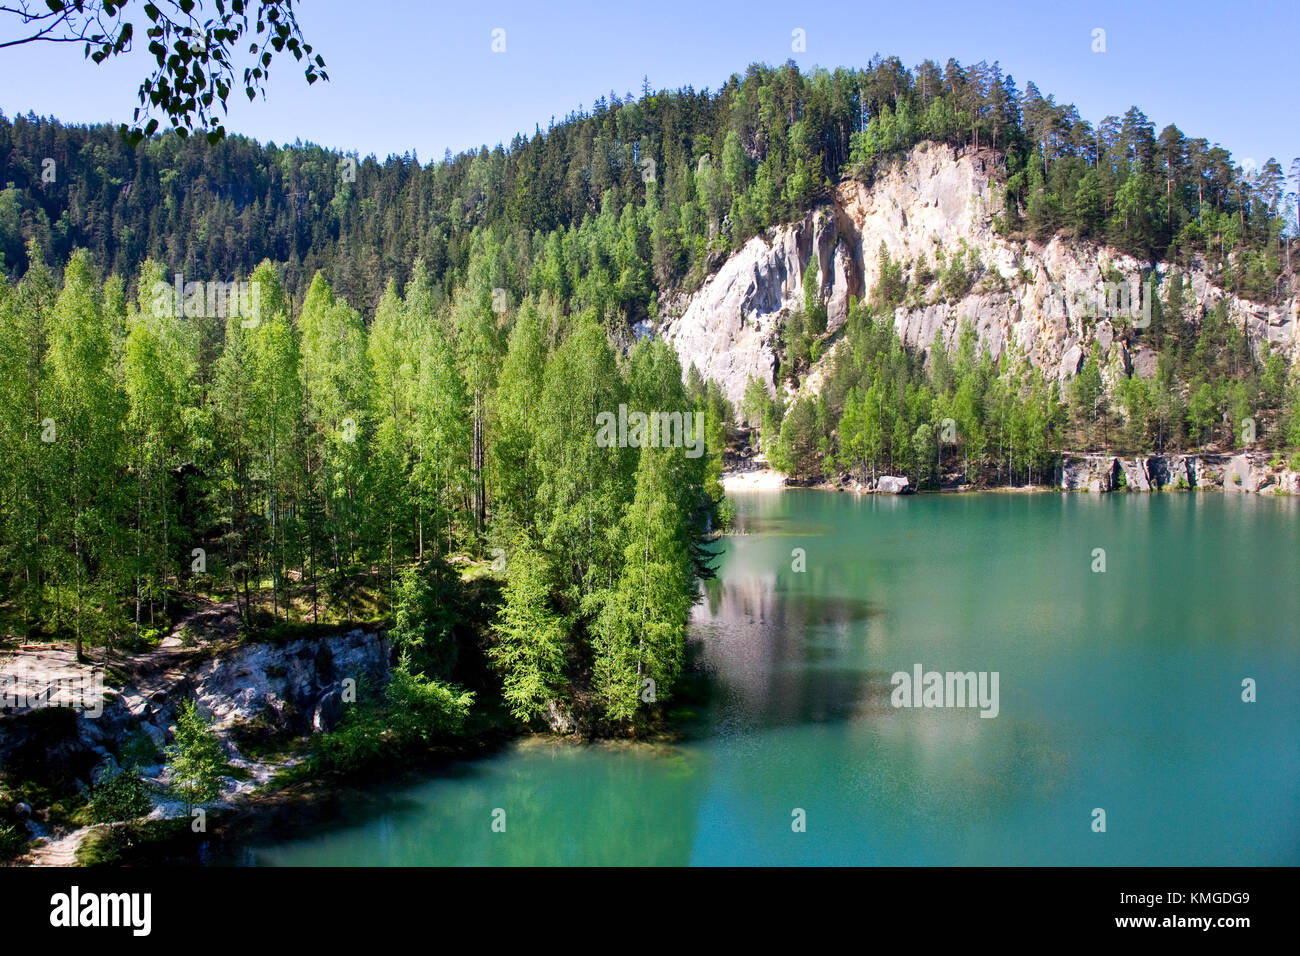 limestone Adrspach rock town and quarry lake - national natural landmark - National park of Adrspach-Teplice rocks - Stock Image